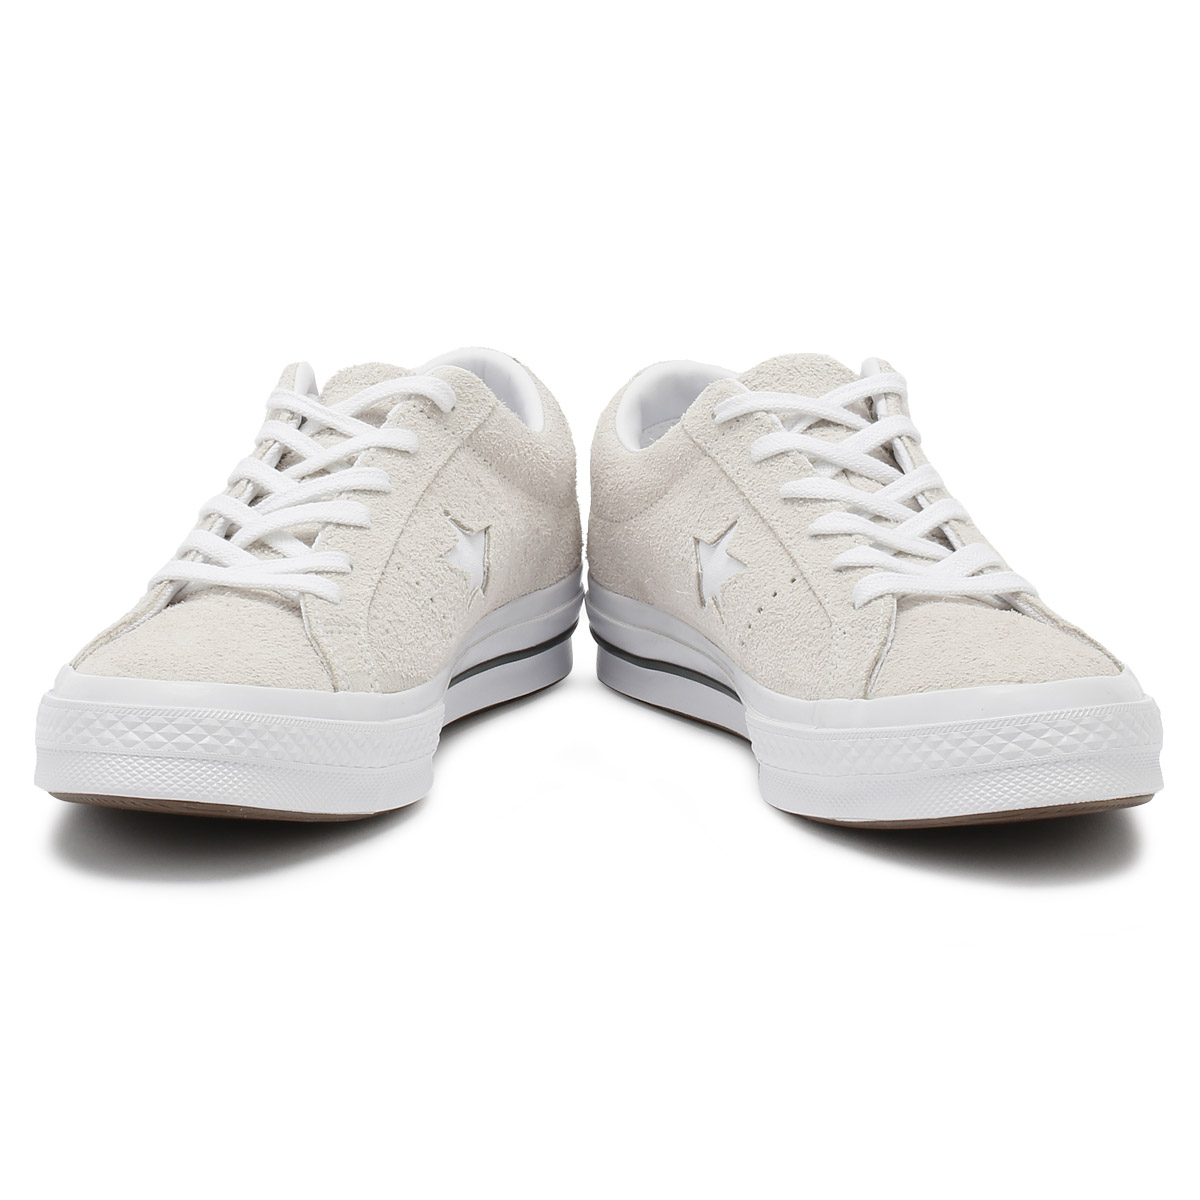 Converse One Star Mens Trainers White Suede Lace Up Ox Sport Casual Shoes